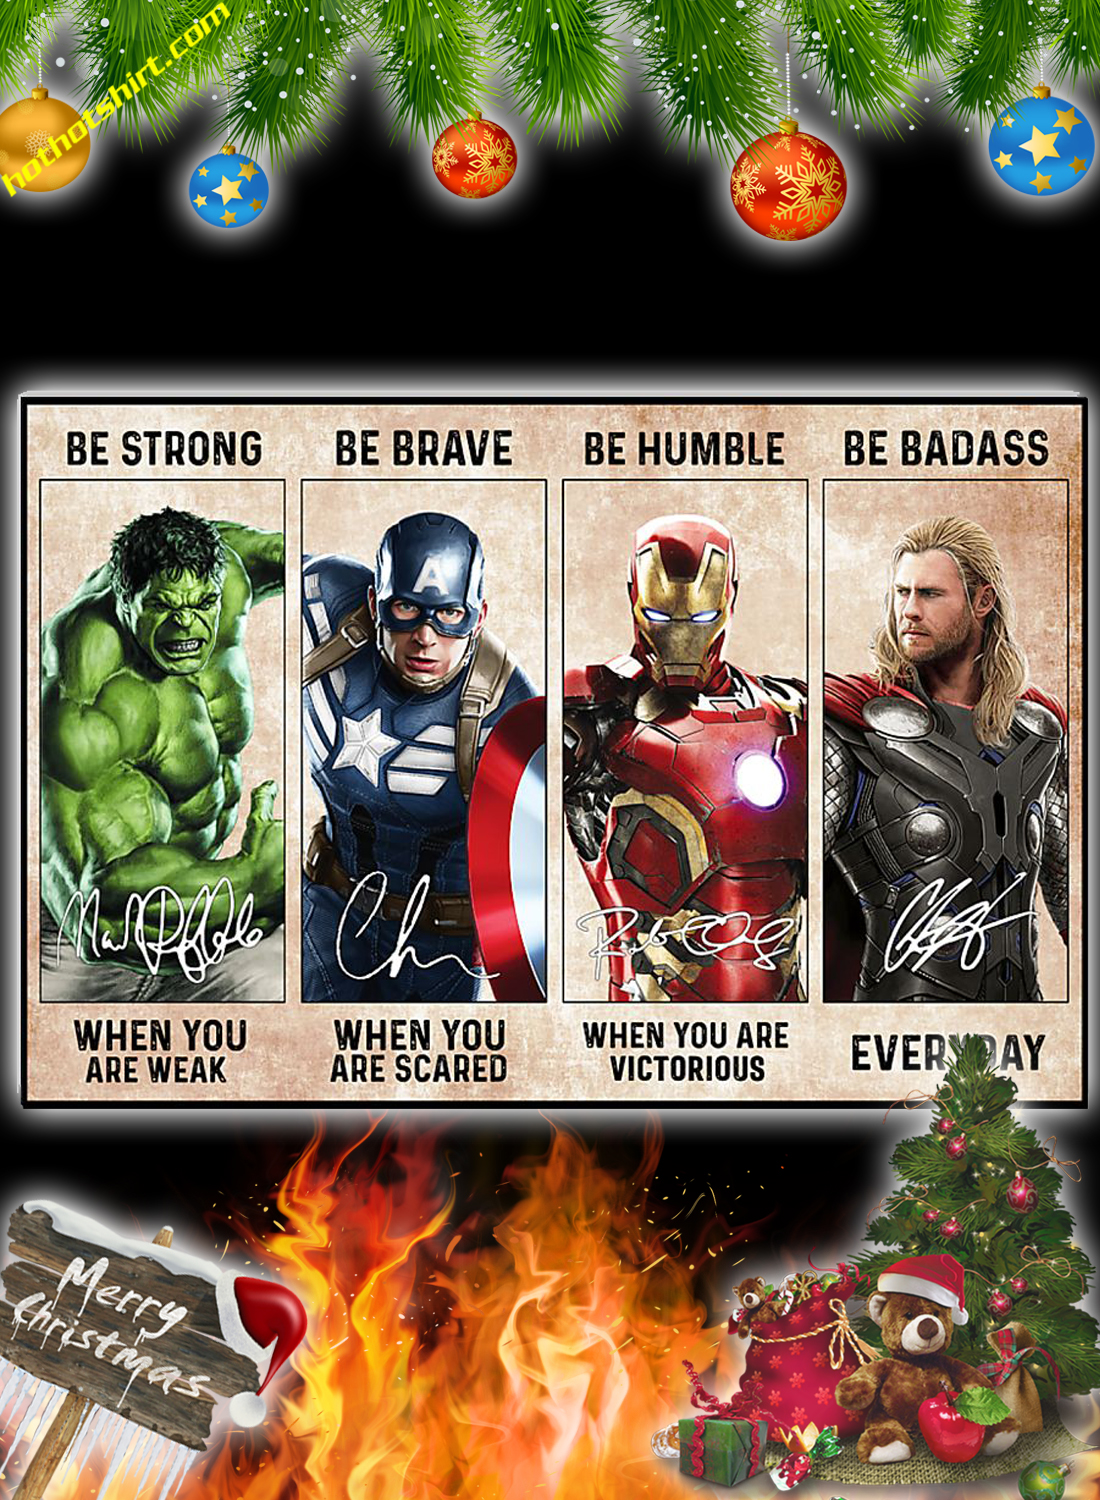 Hulk Captain America Iron Man Thor be strong be brave be humble be badass poster 1